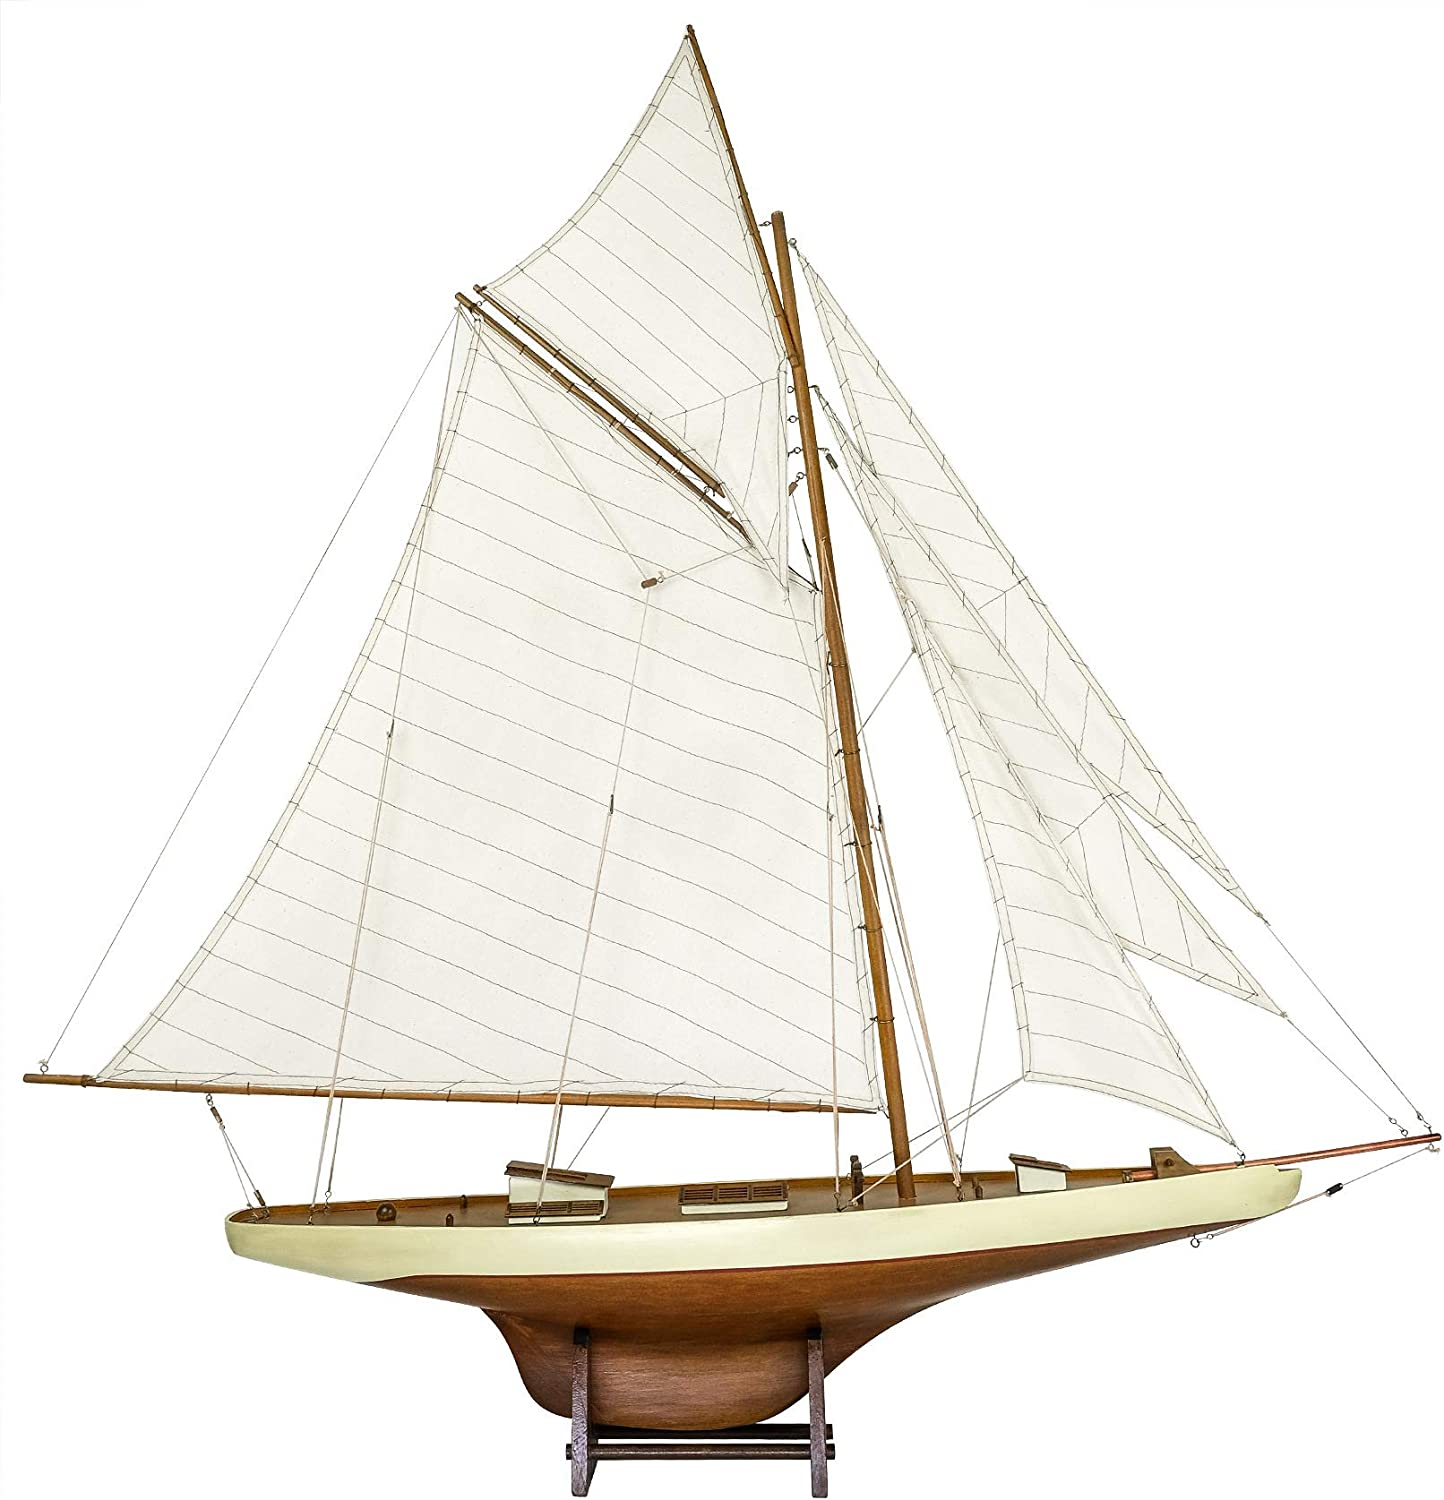 SAILINGSTORY Wooden Sailboat Decor Sailboat Model Ship America's Cup Columbia 1901 Large